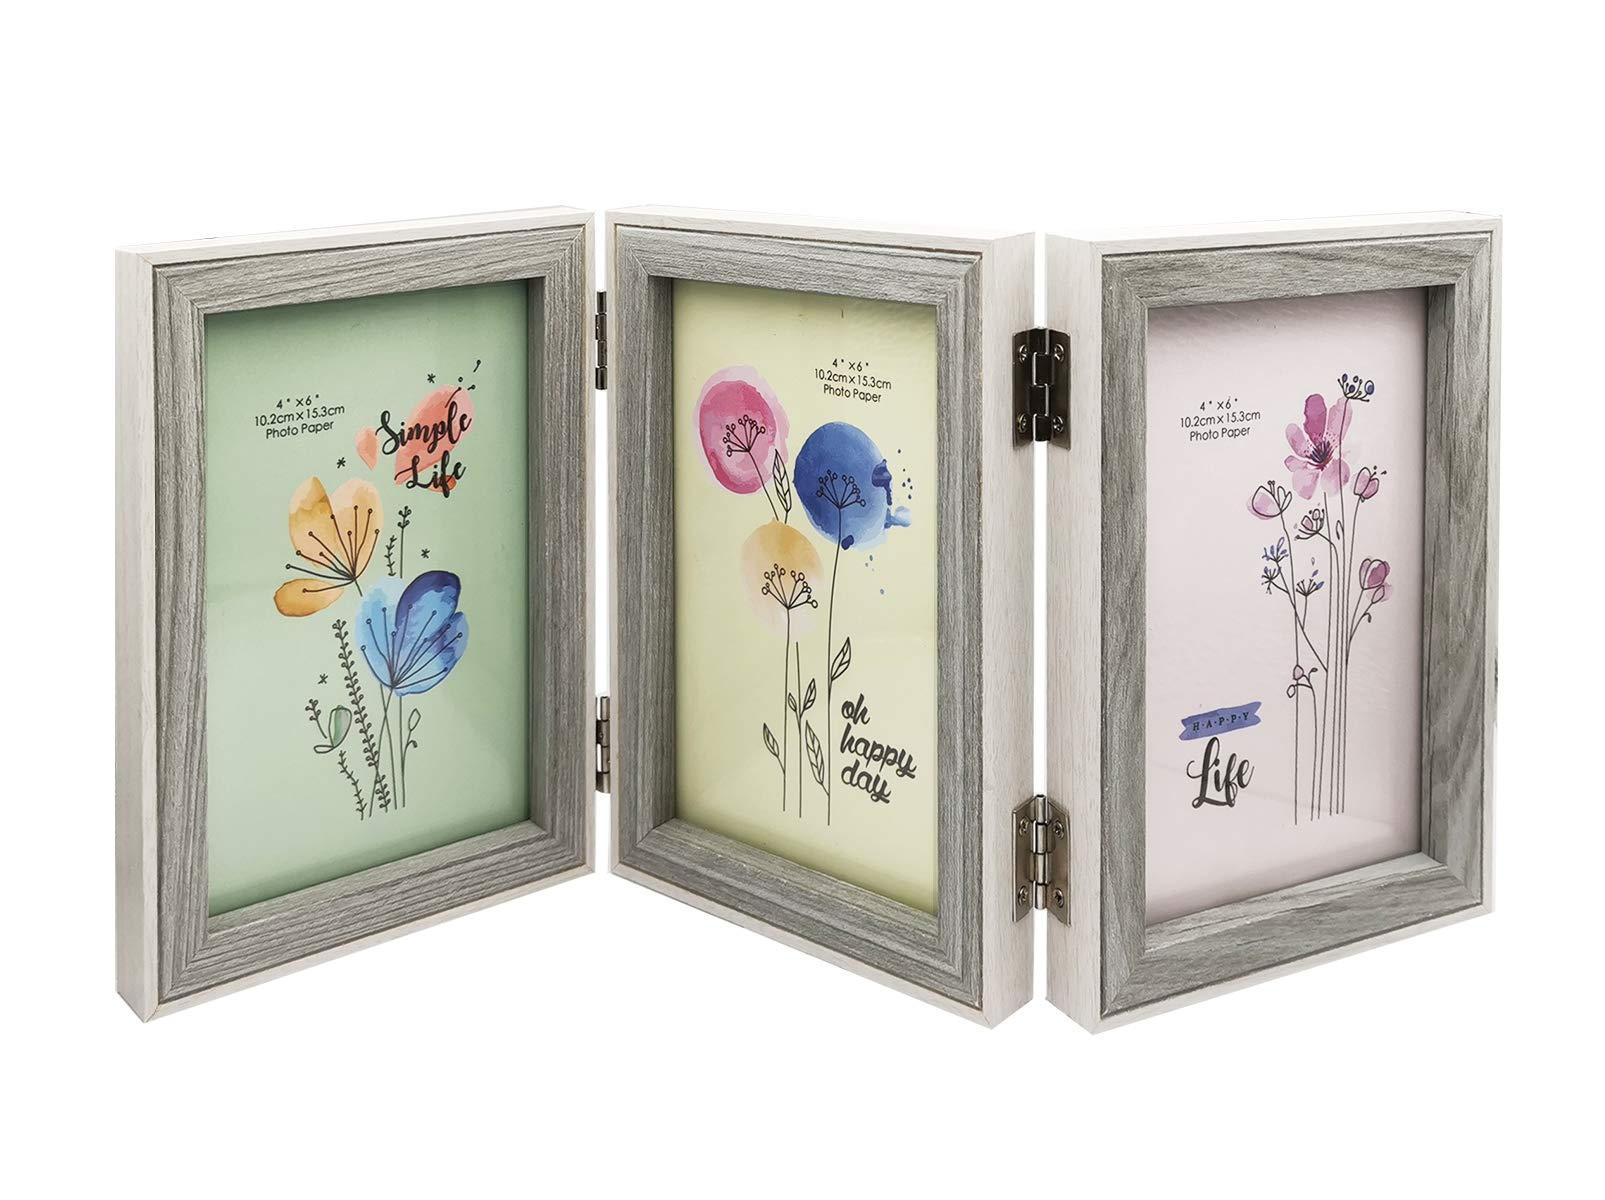 MICKYU Decorative Triple Hinged Table Desk Top Picture Photo Frame, 3 Vertical Openings, 4x6 inches with Real Glass